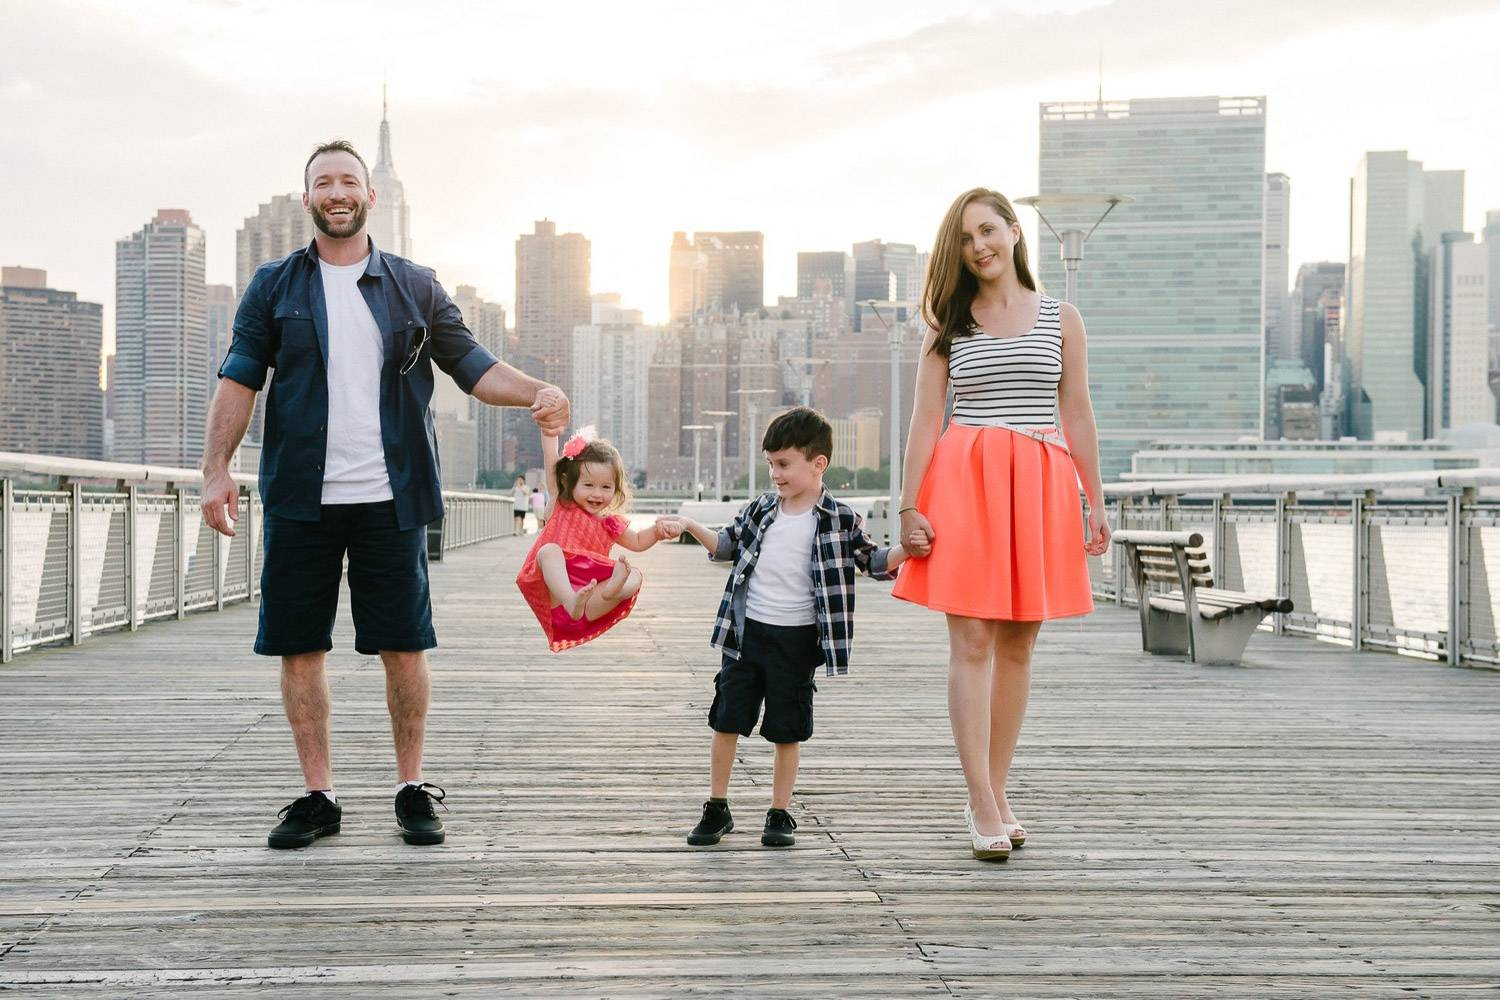 Image of family walking with kids with NYC skyline in the background (Photo credit: Kimberly for Flytographer in NYC)